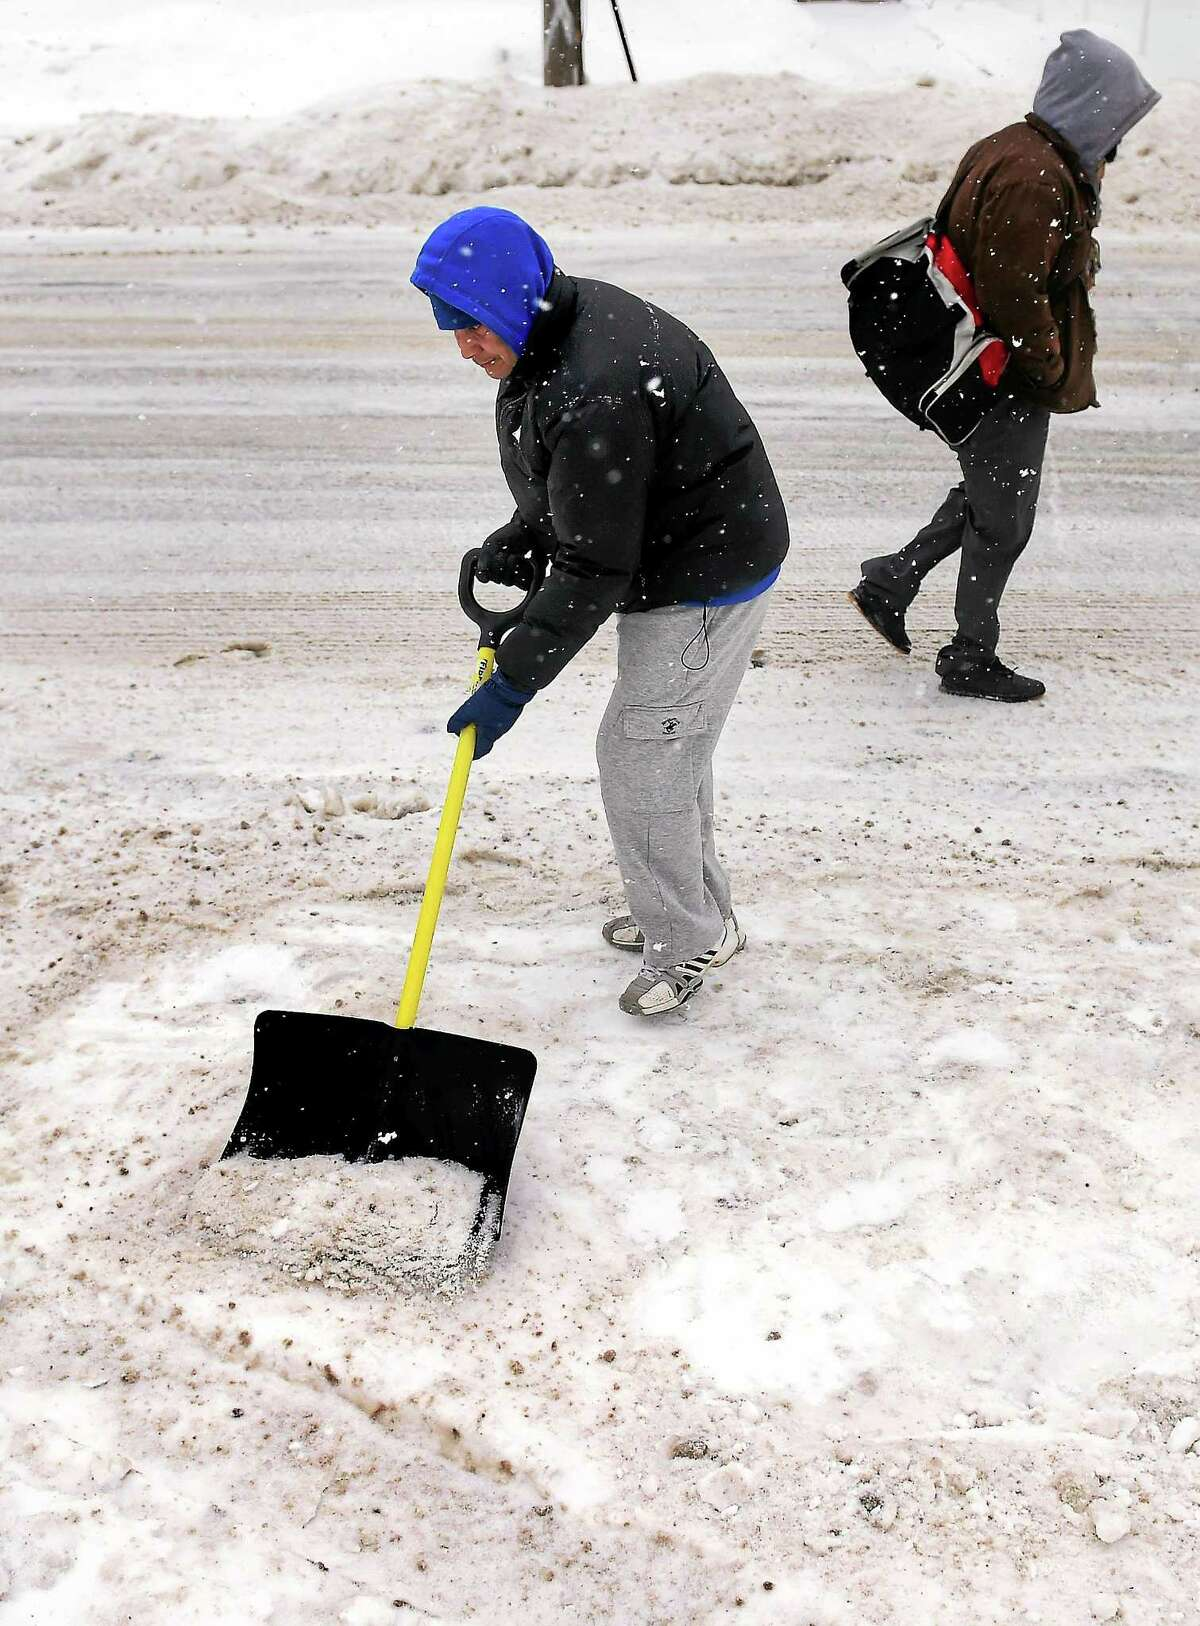 Victor Erazo shovels snow and ice in front of his home on Wakelee Ave. in Ansonia on 2/9/2015.